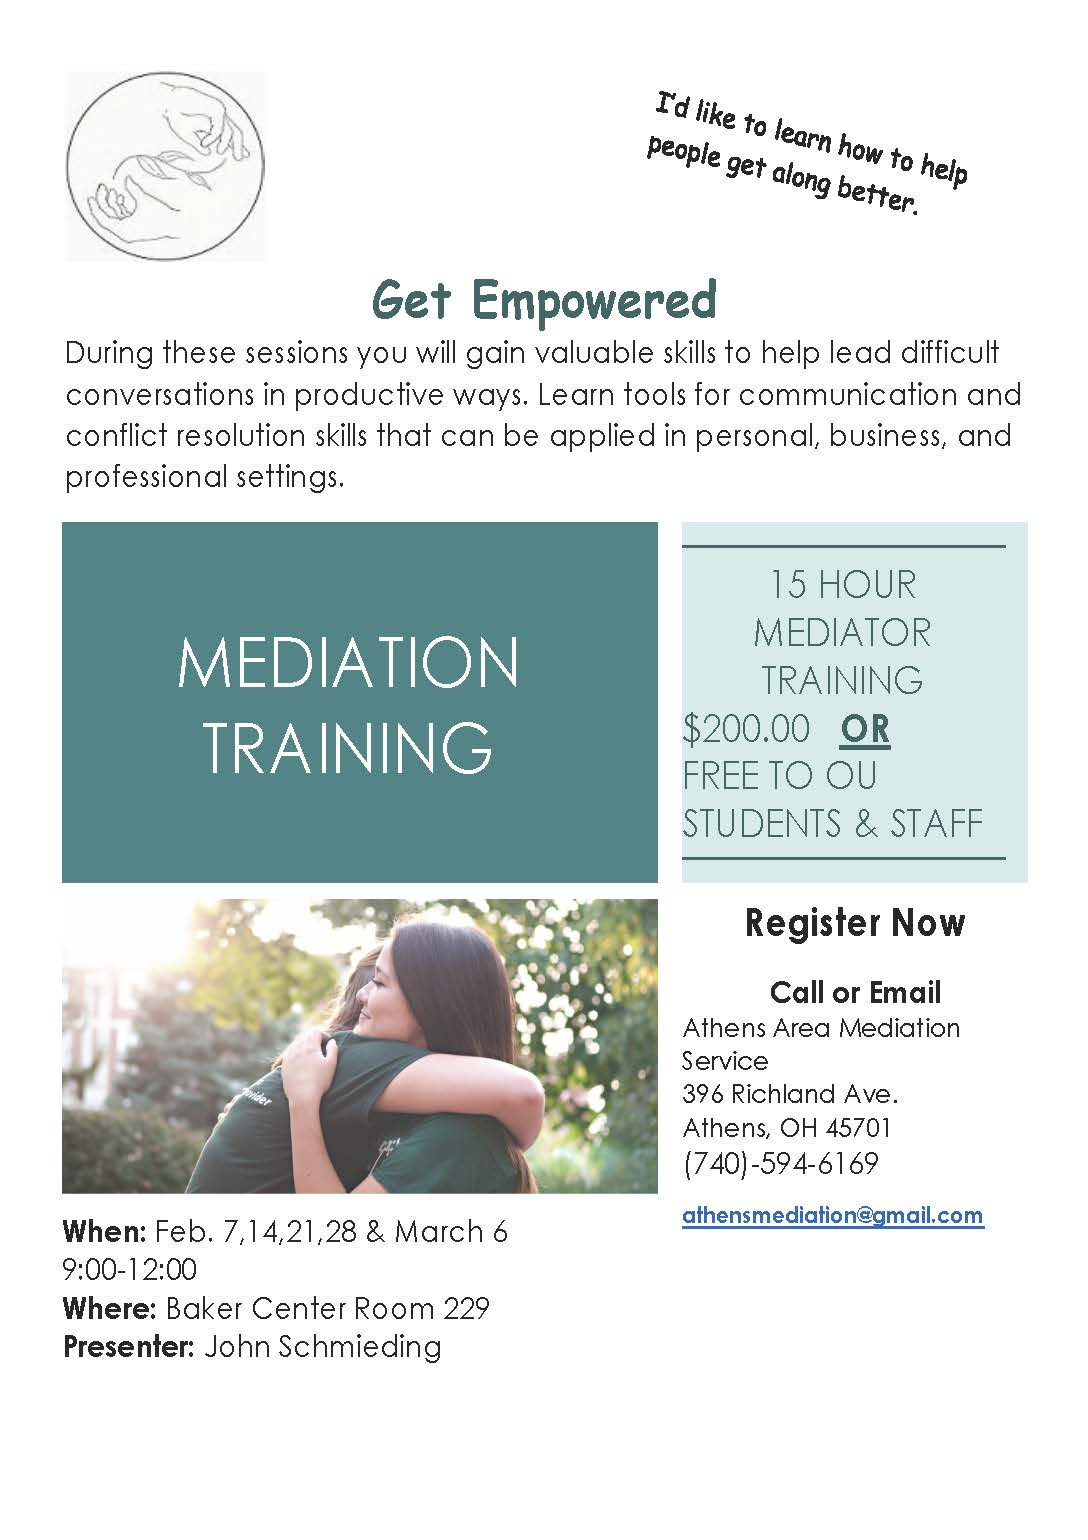 Mediation Winter 2020 Training flier